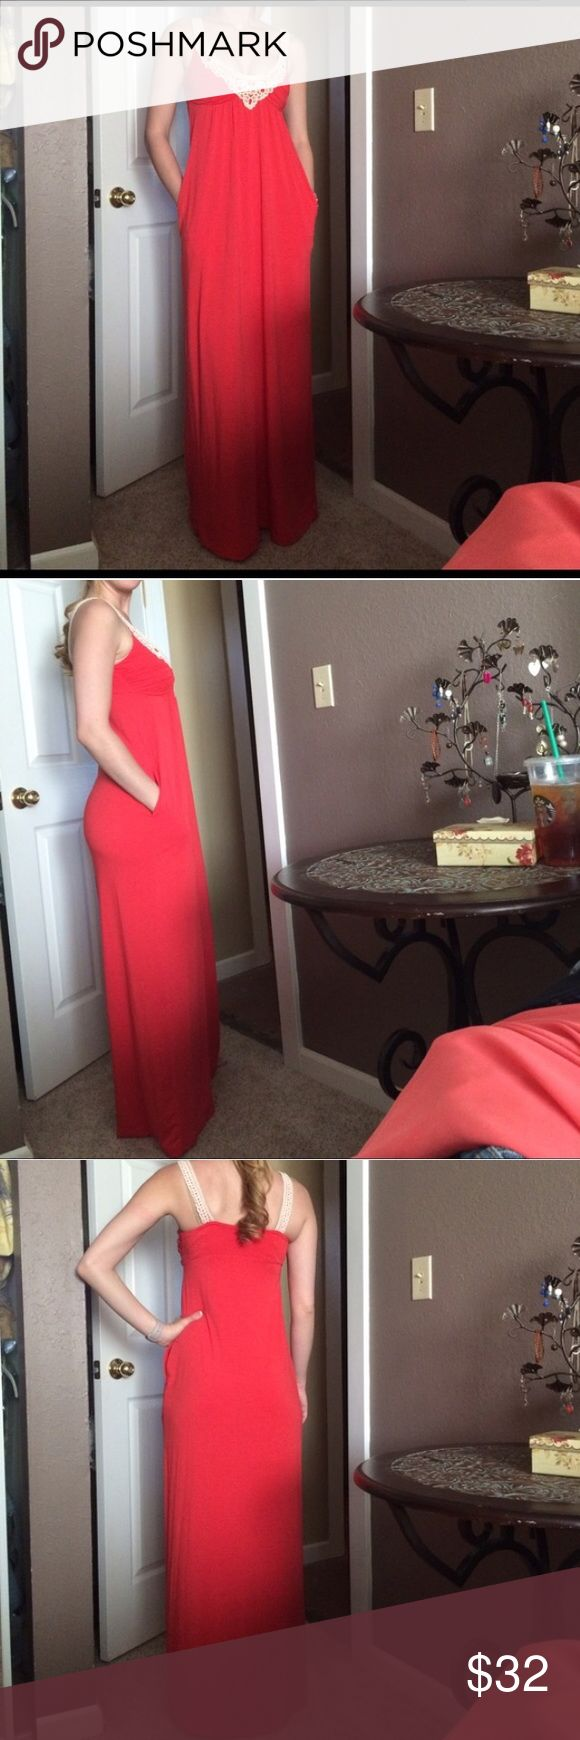 Guess Dress Coral Maxi Guess Dress. Size: Small. Excellent condition! Guess Dresses Maxi